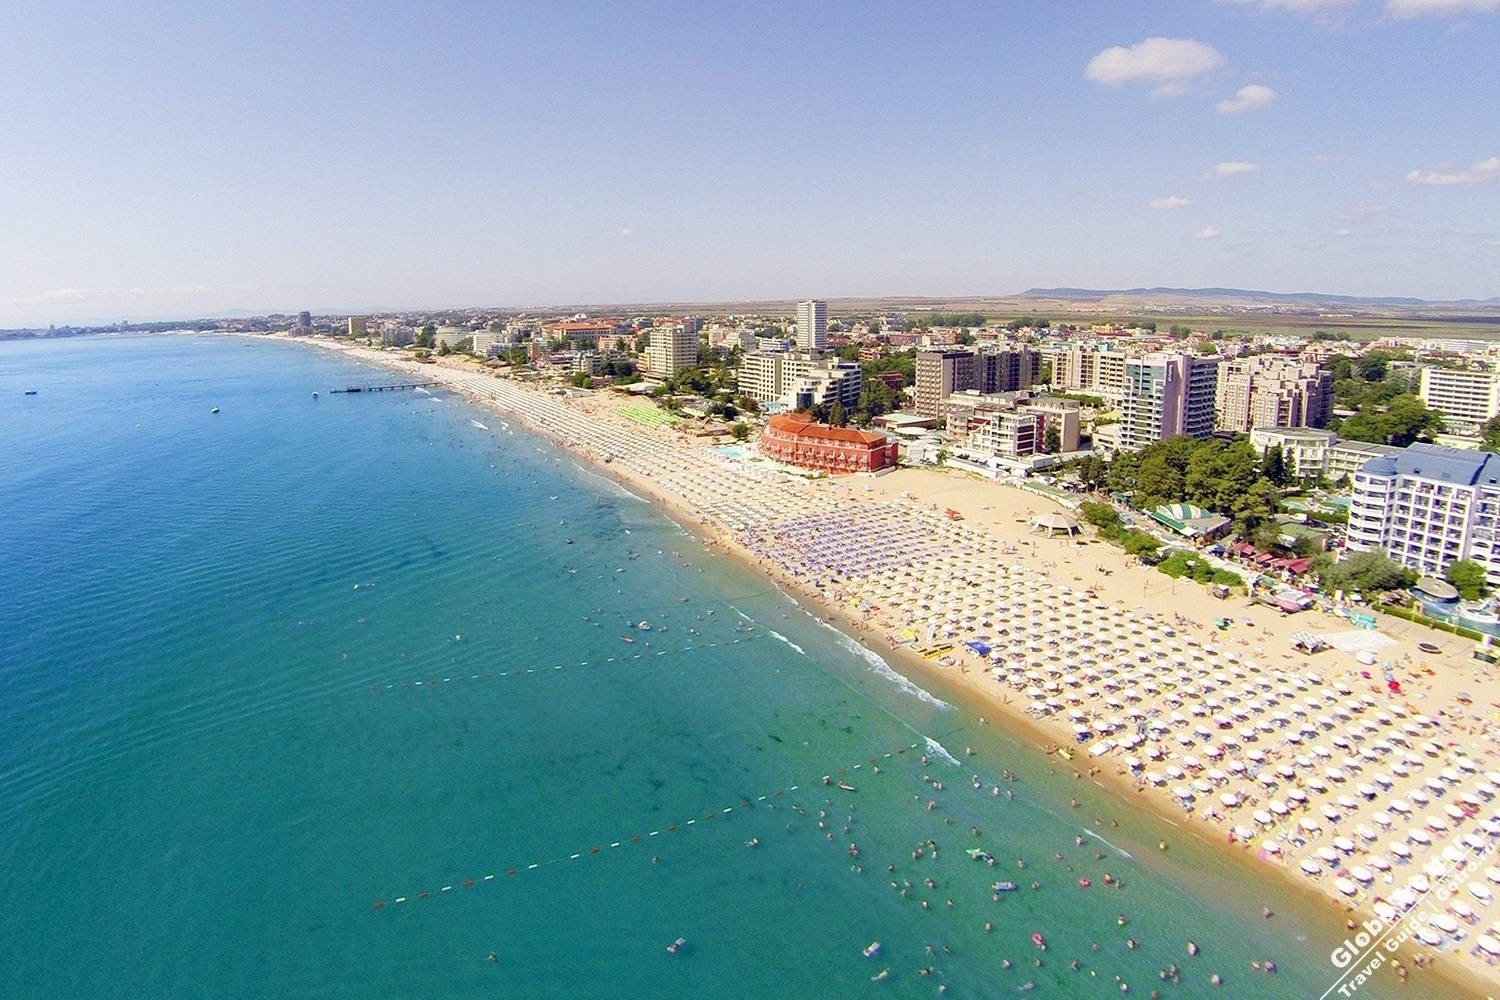 Купить Апартаменты в Болгарии Комплекс Сансет Бийч 2 / Sunset Beach 2